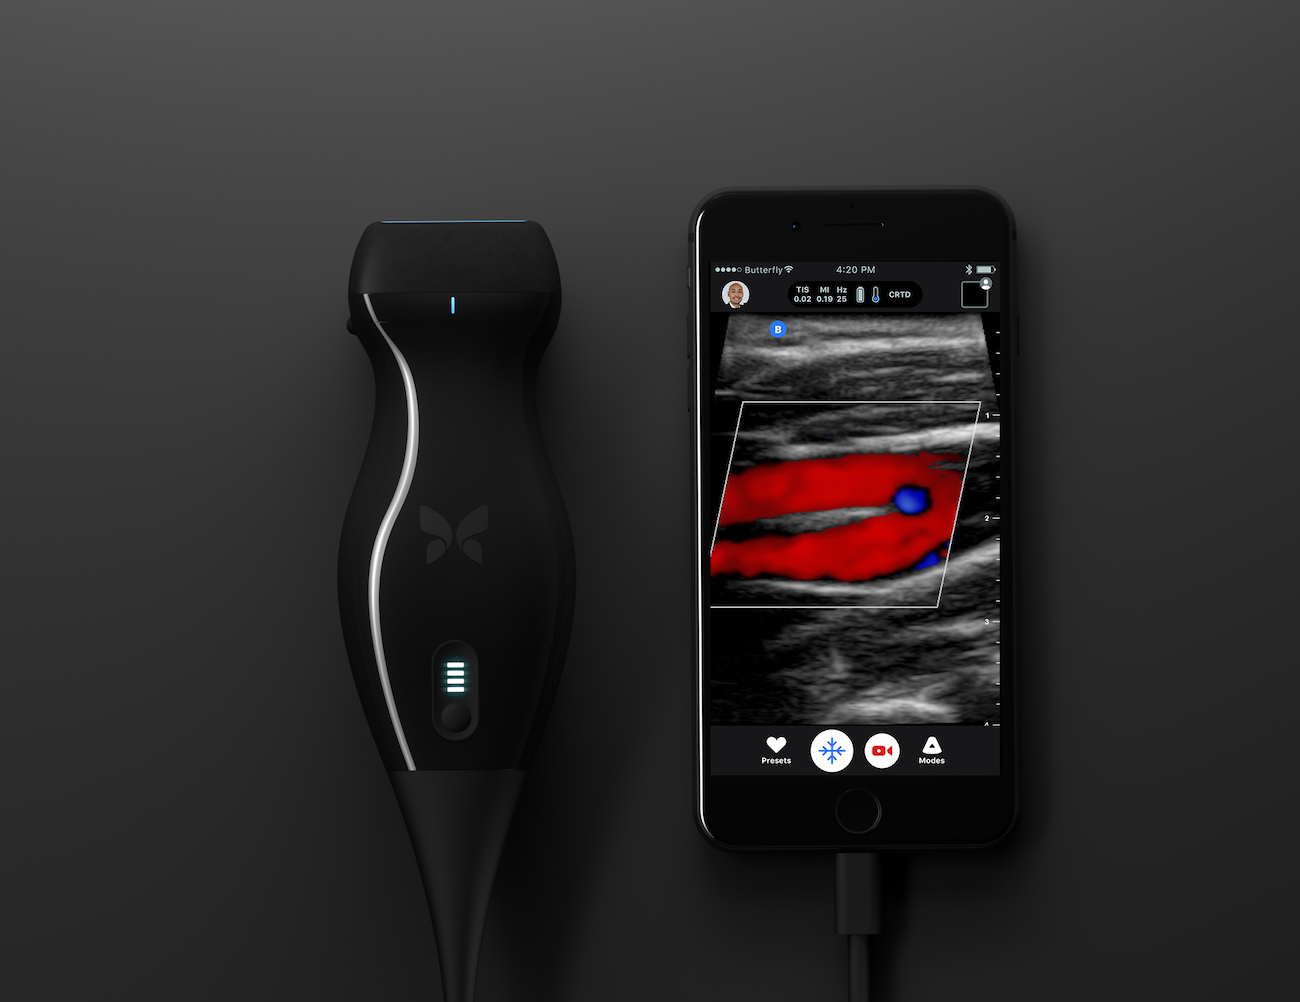 Butterfly iQ Portable Ultrasound Device